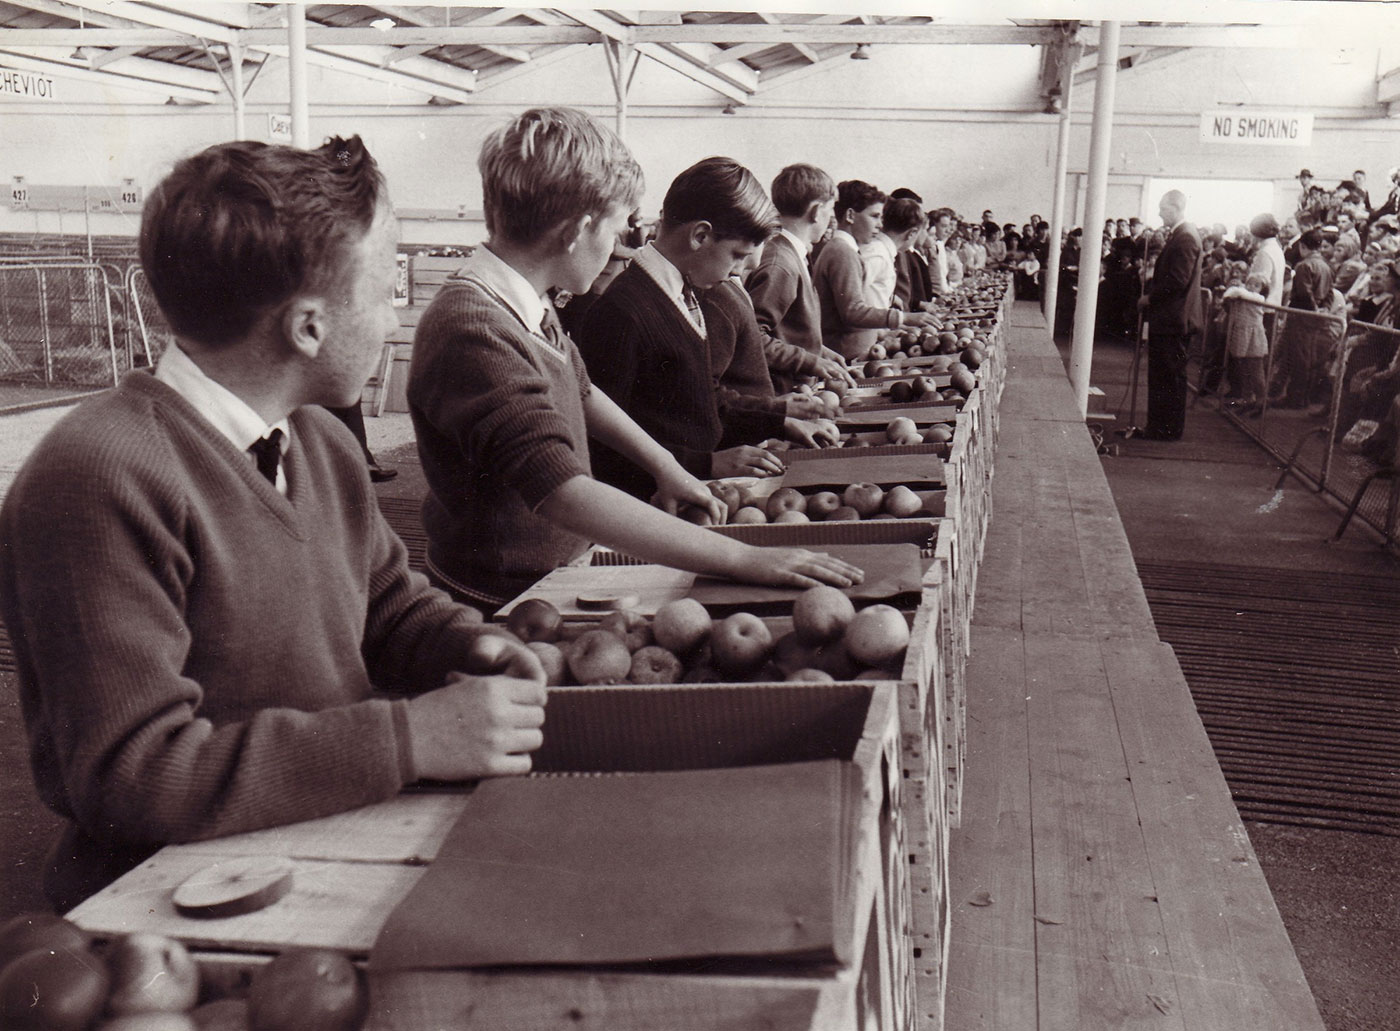 Row of school boys standing at a table with crates of apples on top. - click to view larger image